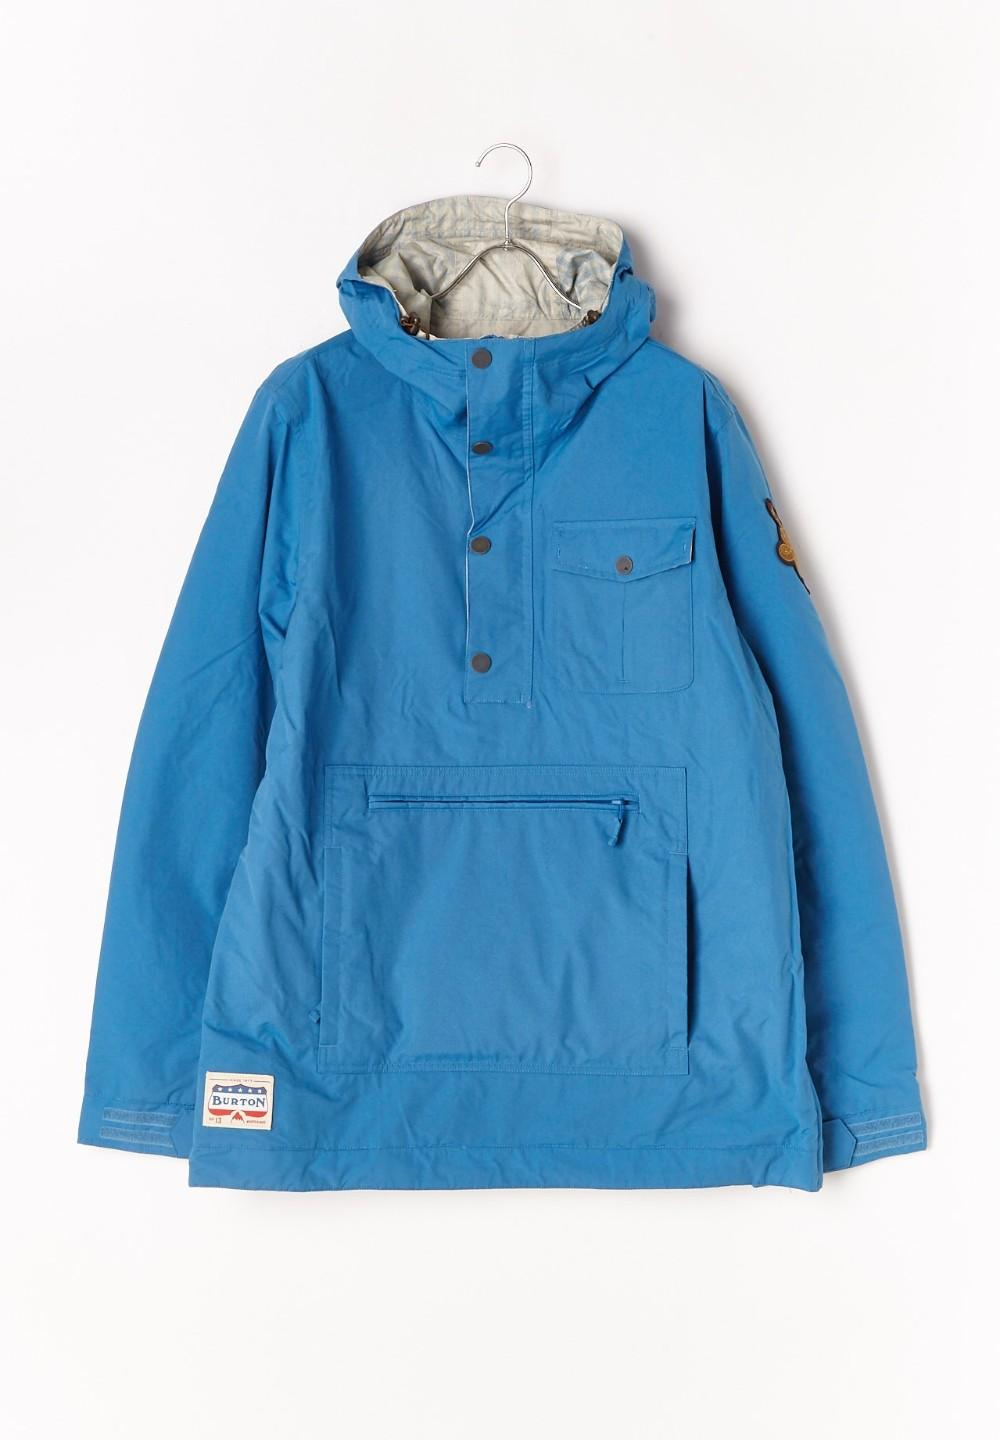 Sawyer Anorak Glacier Blue / Gingham - #1